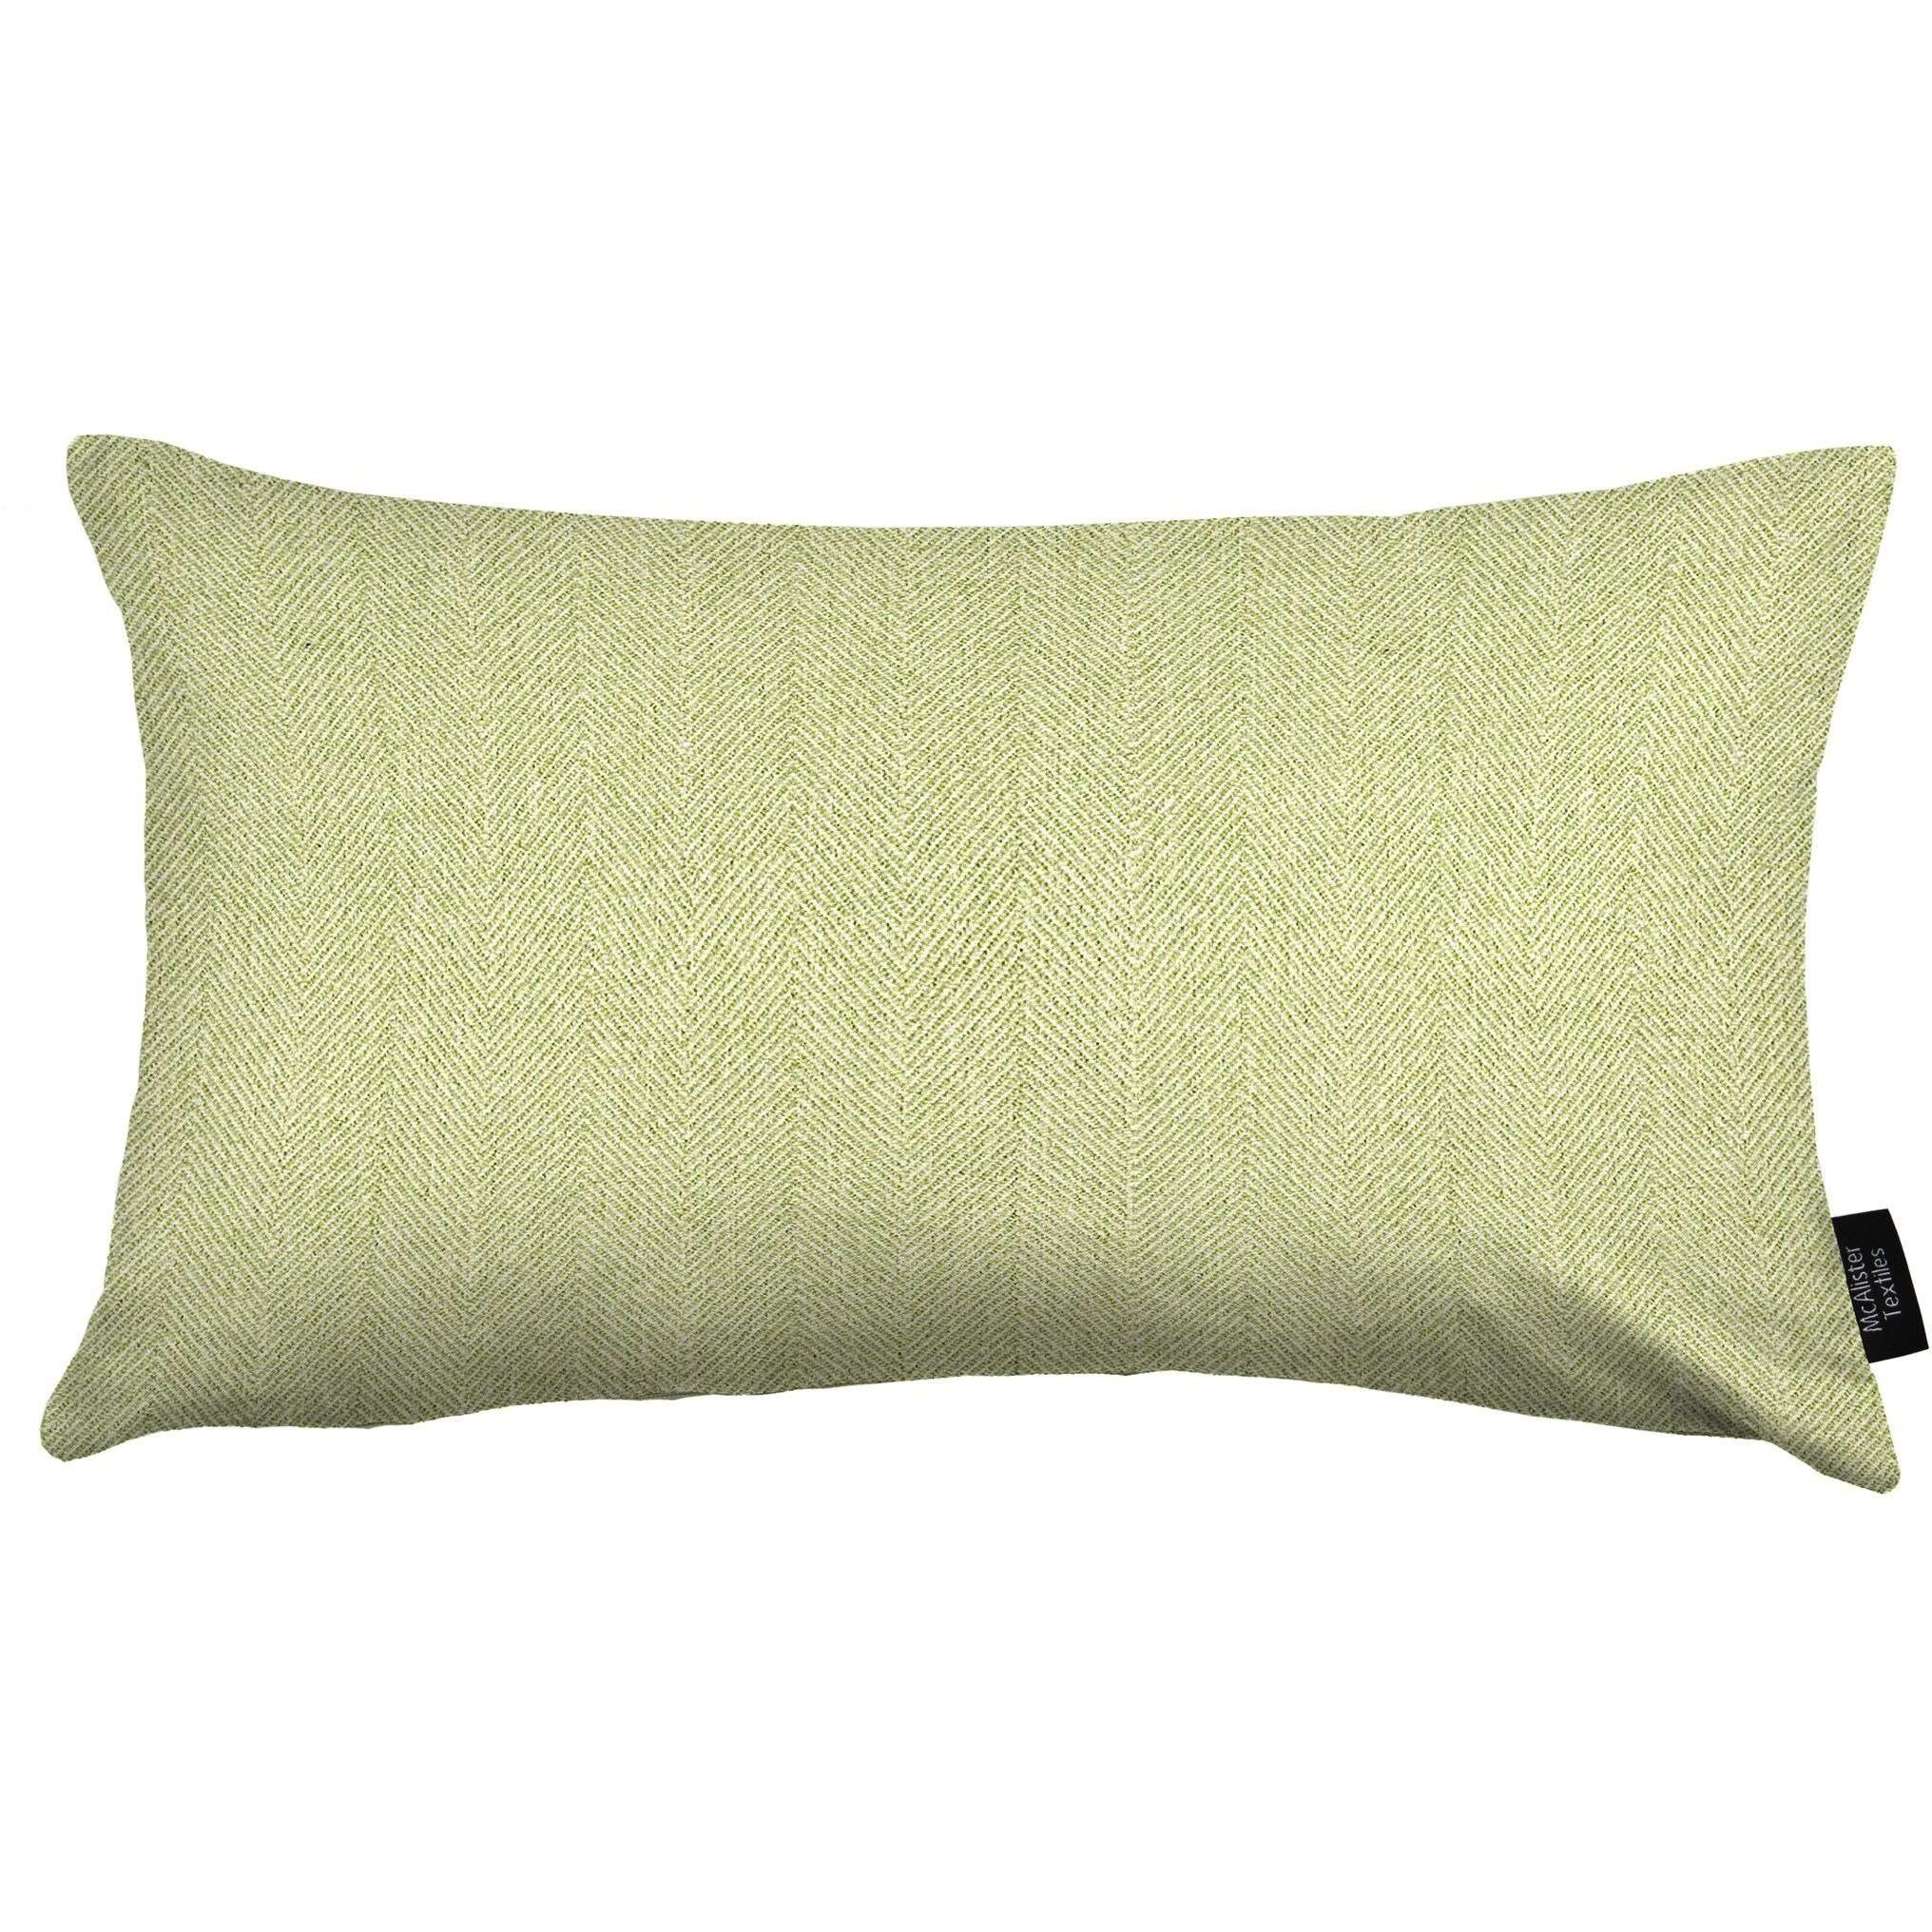 McAlister Textiles Herringbone Sage Green Cushion Cushions and Covers Cover Only 50cm x 30cm